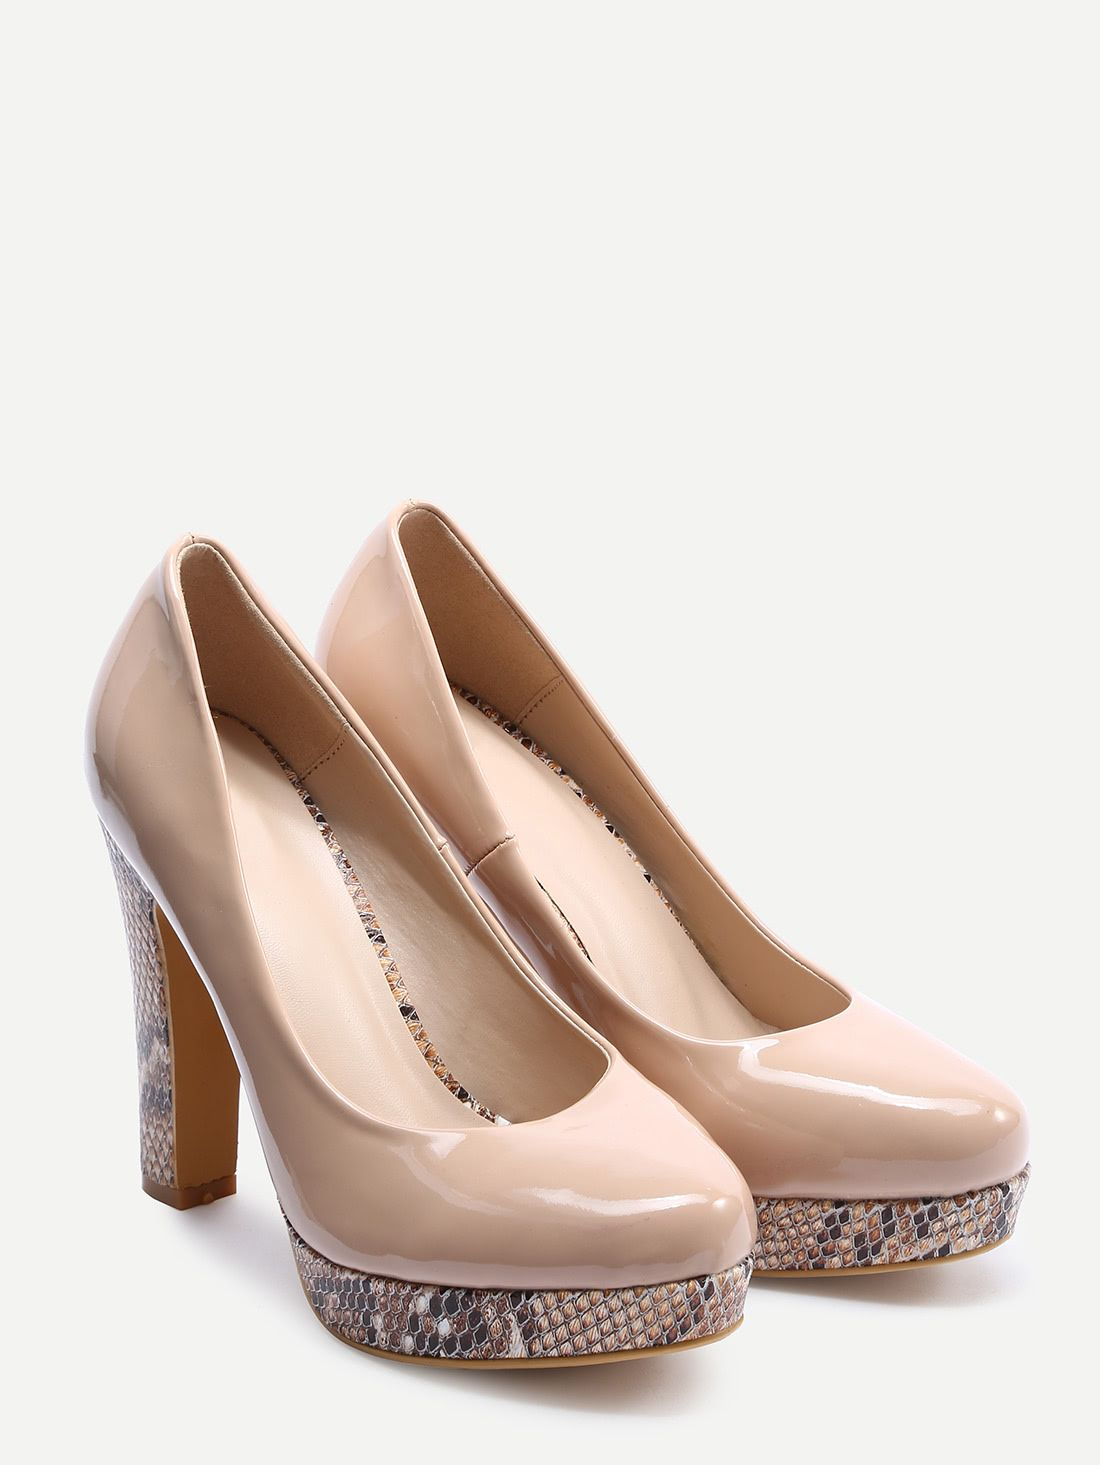 d176c2a6f2b Shop Cream-Colored Thick Heel Platform Pumps online. SheIn offers Cream-Colored  Thick Heel Platform Pumps   more to fit your fashionable needs.